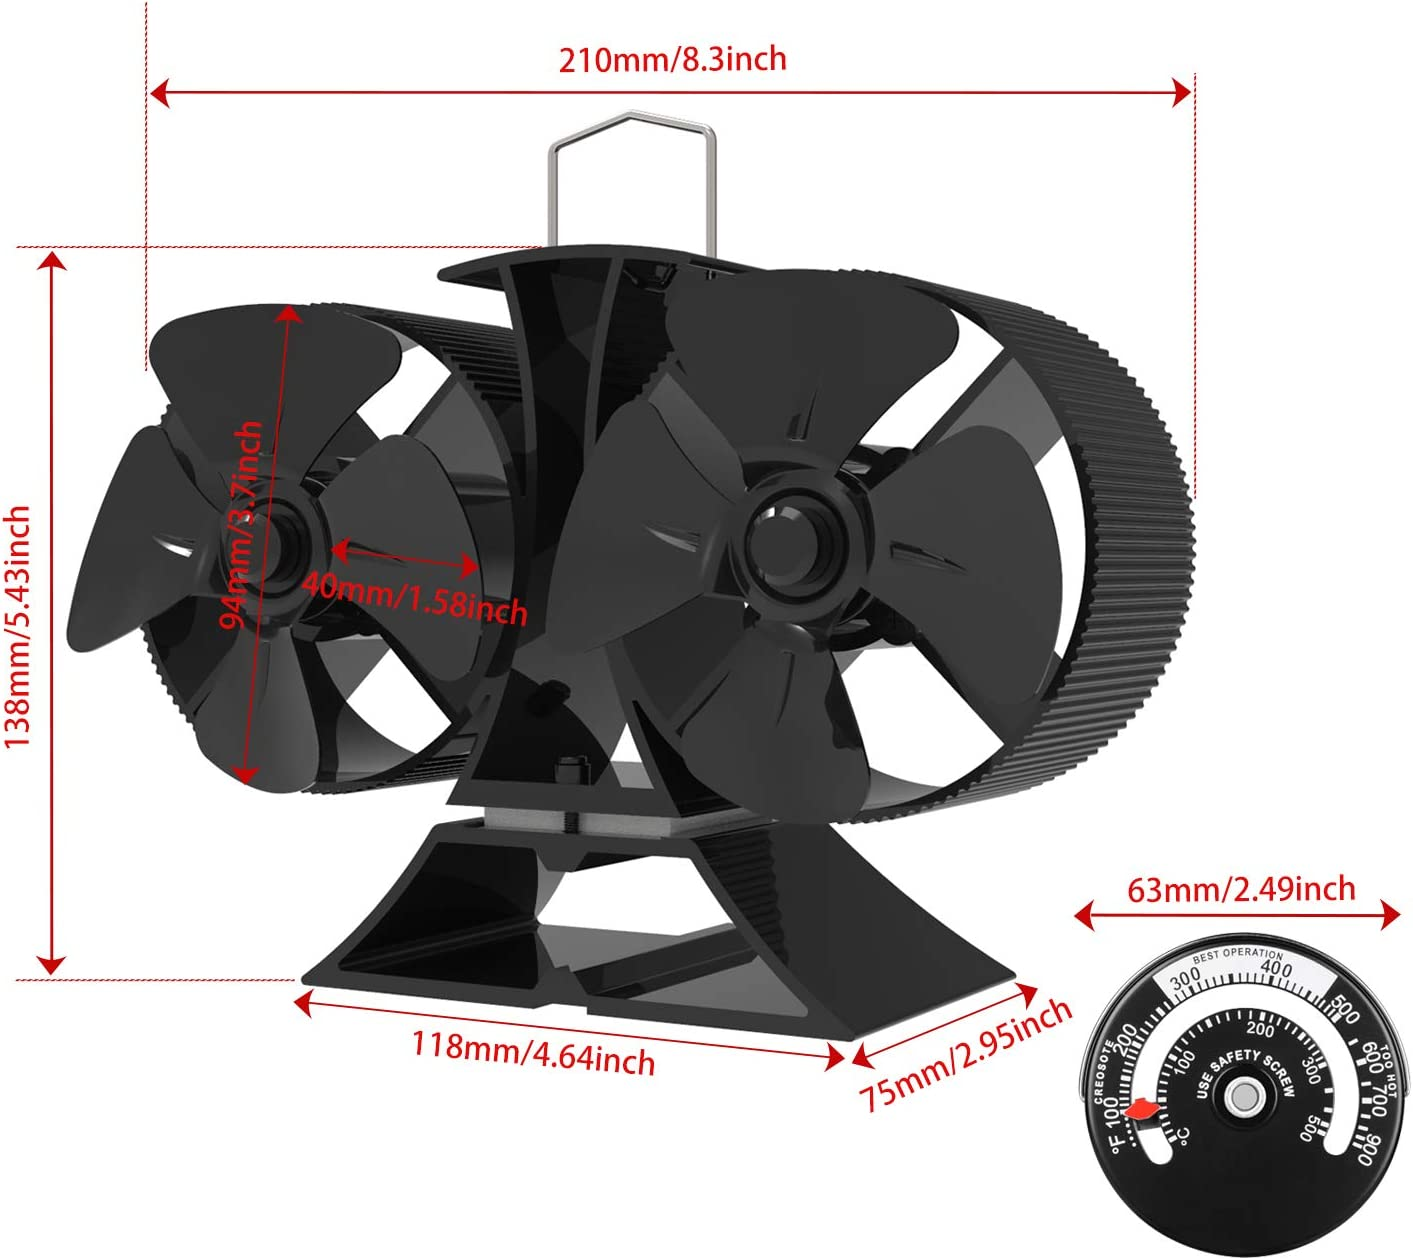 Aluminium Black, Twin Motors KINDEN Mini Wood Stove Fan 8-Blade 5.5 Inch Height Fireplace Fan Eco-Friendly with Stove Thermometer